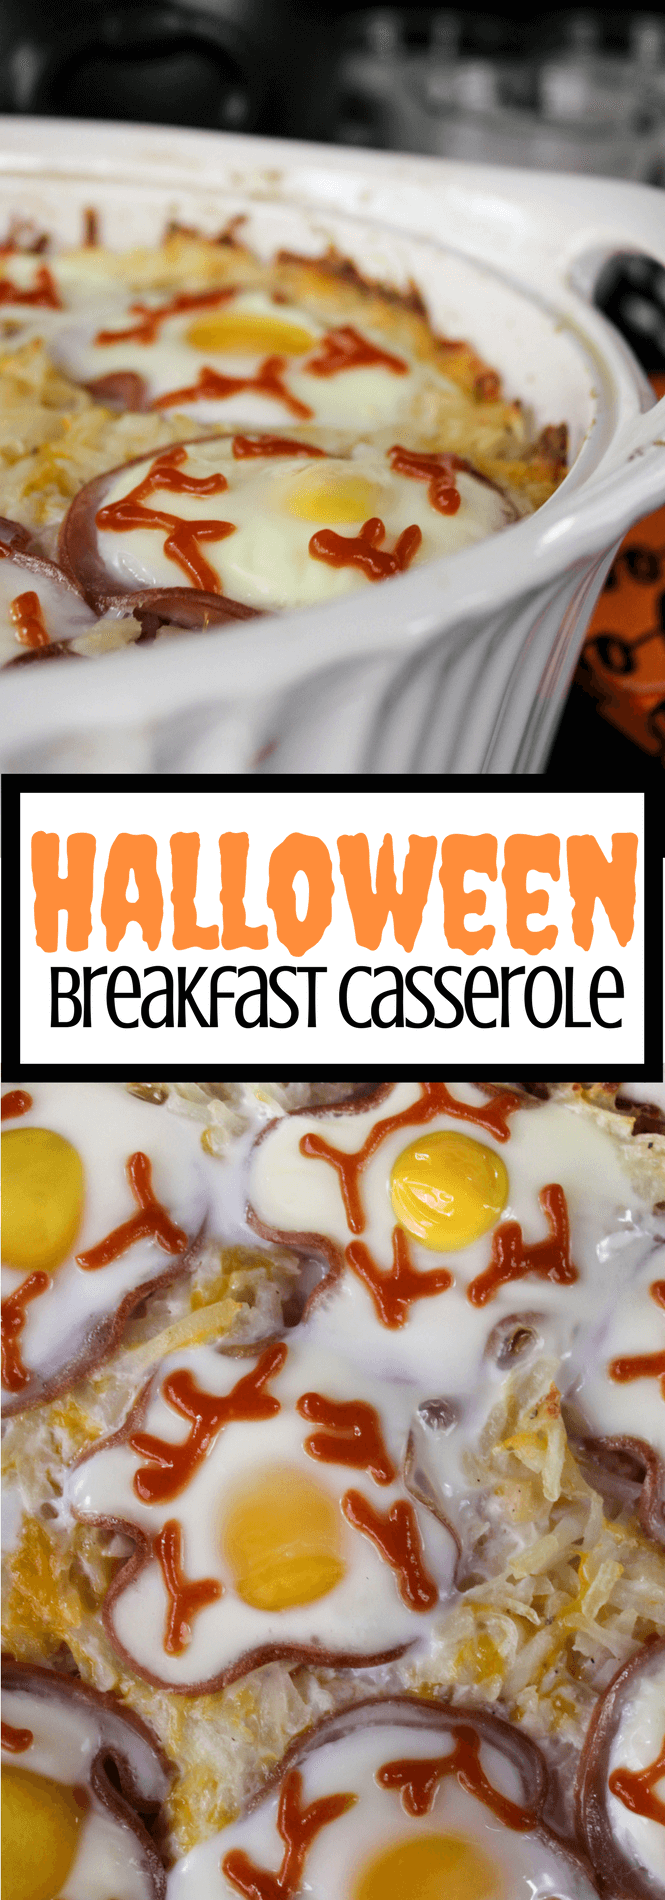 Halloween Breakfast Casserole